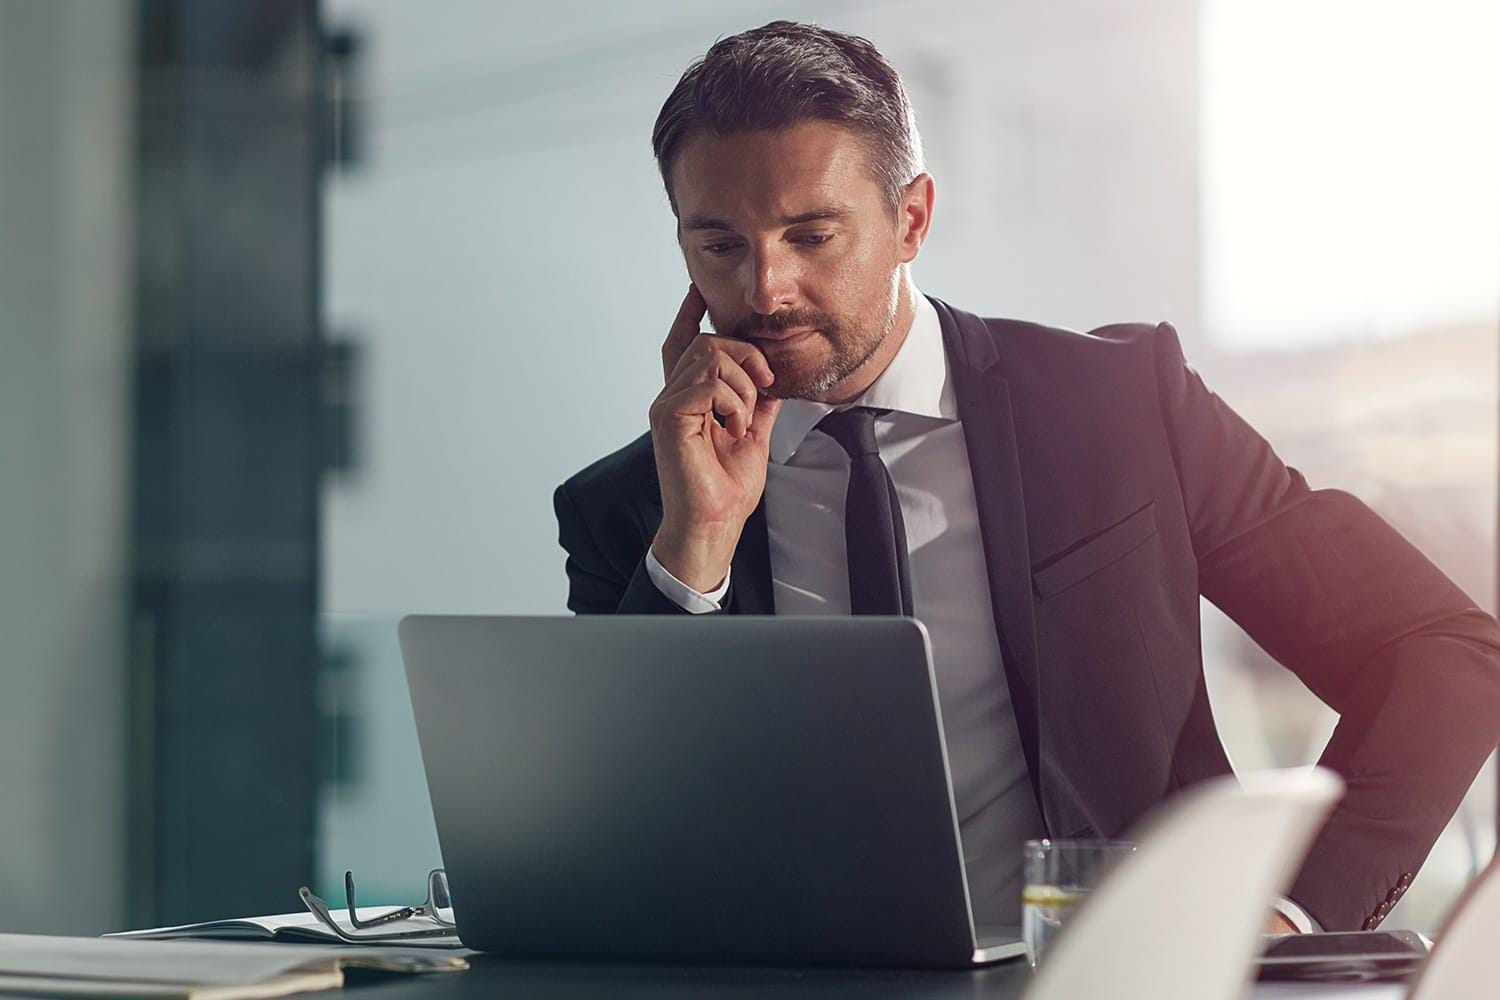 Business man working on laptop in office